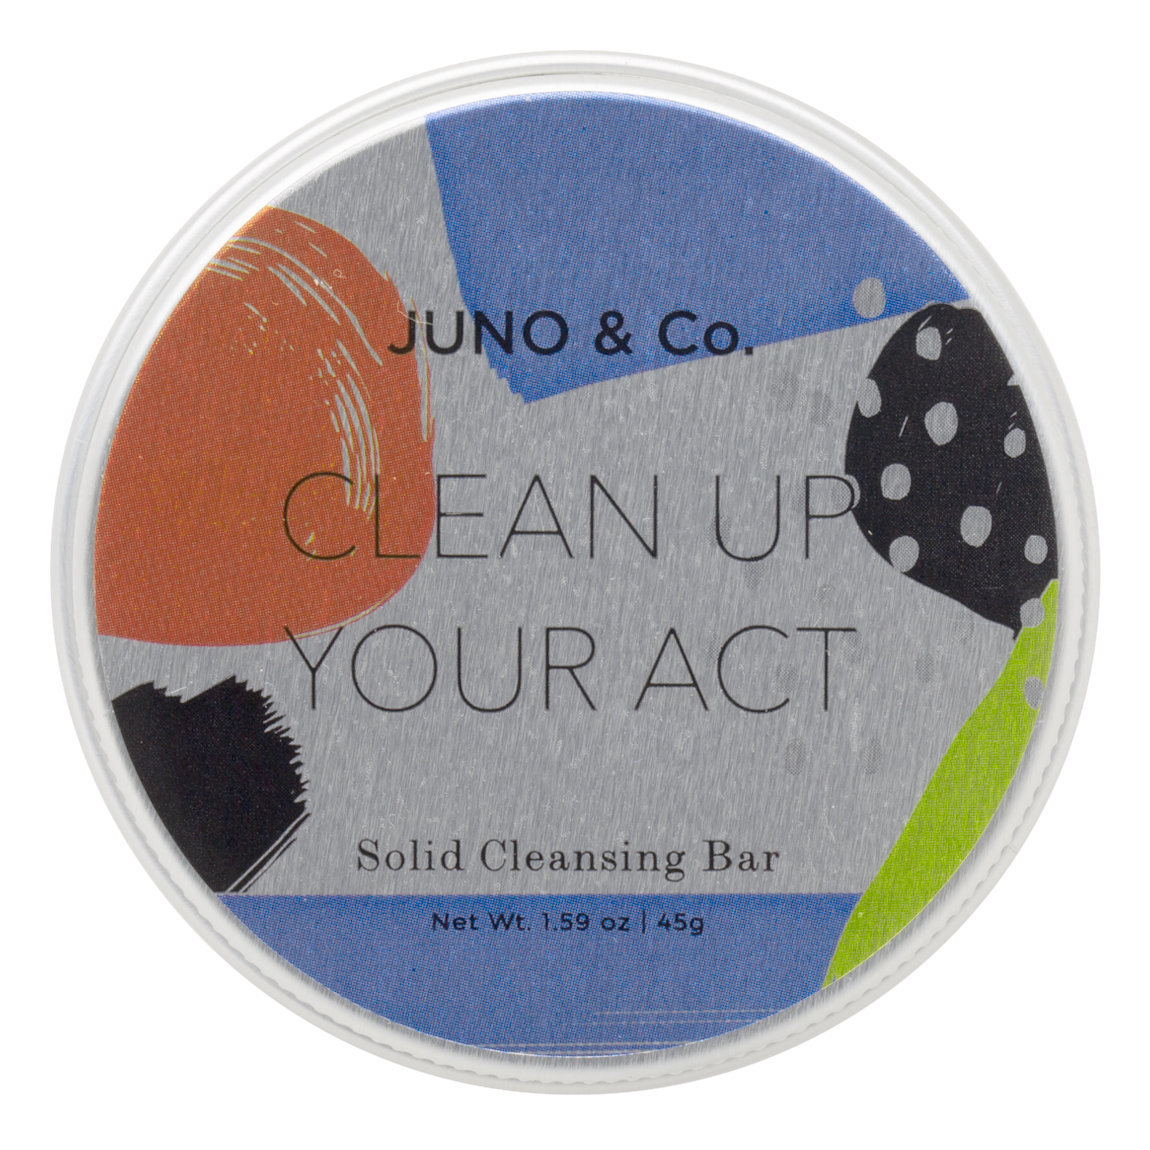 JUNO & Co. Clean Up Your Act Solid Cleansing Bar alternative view 1 - product swatch.